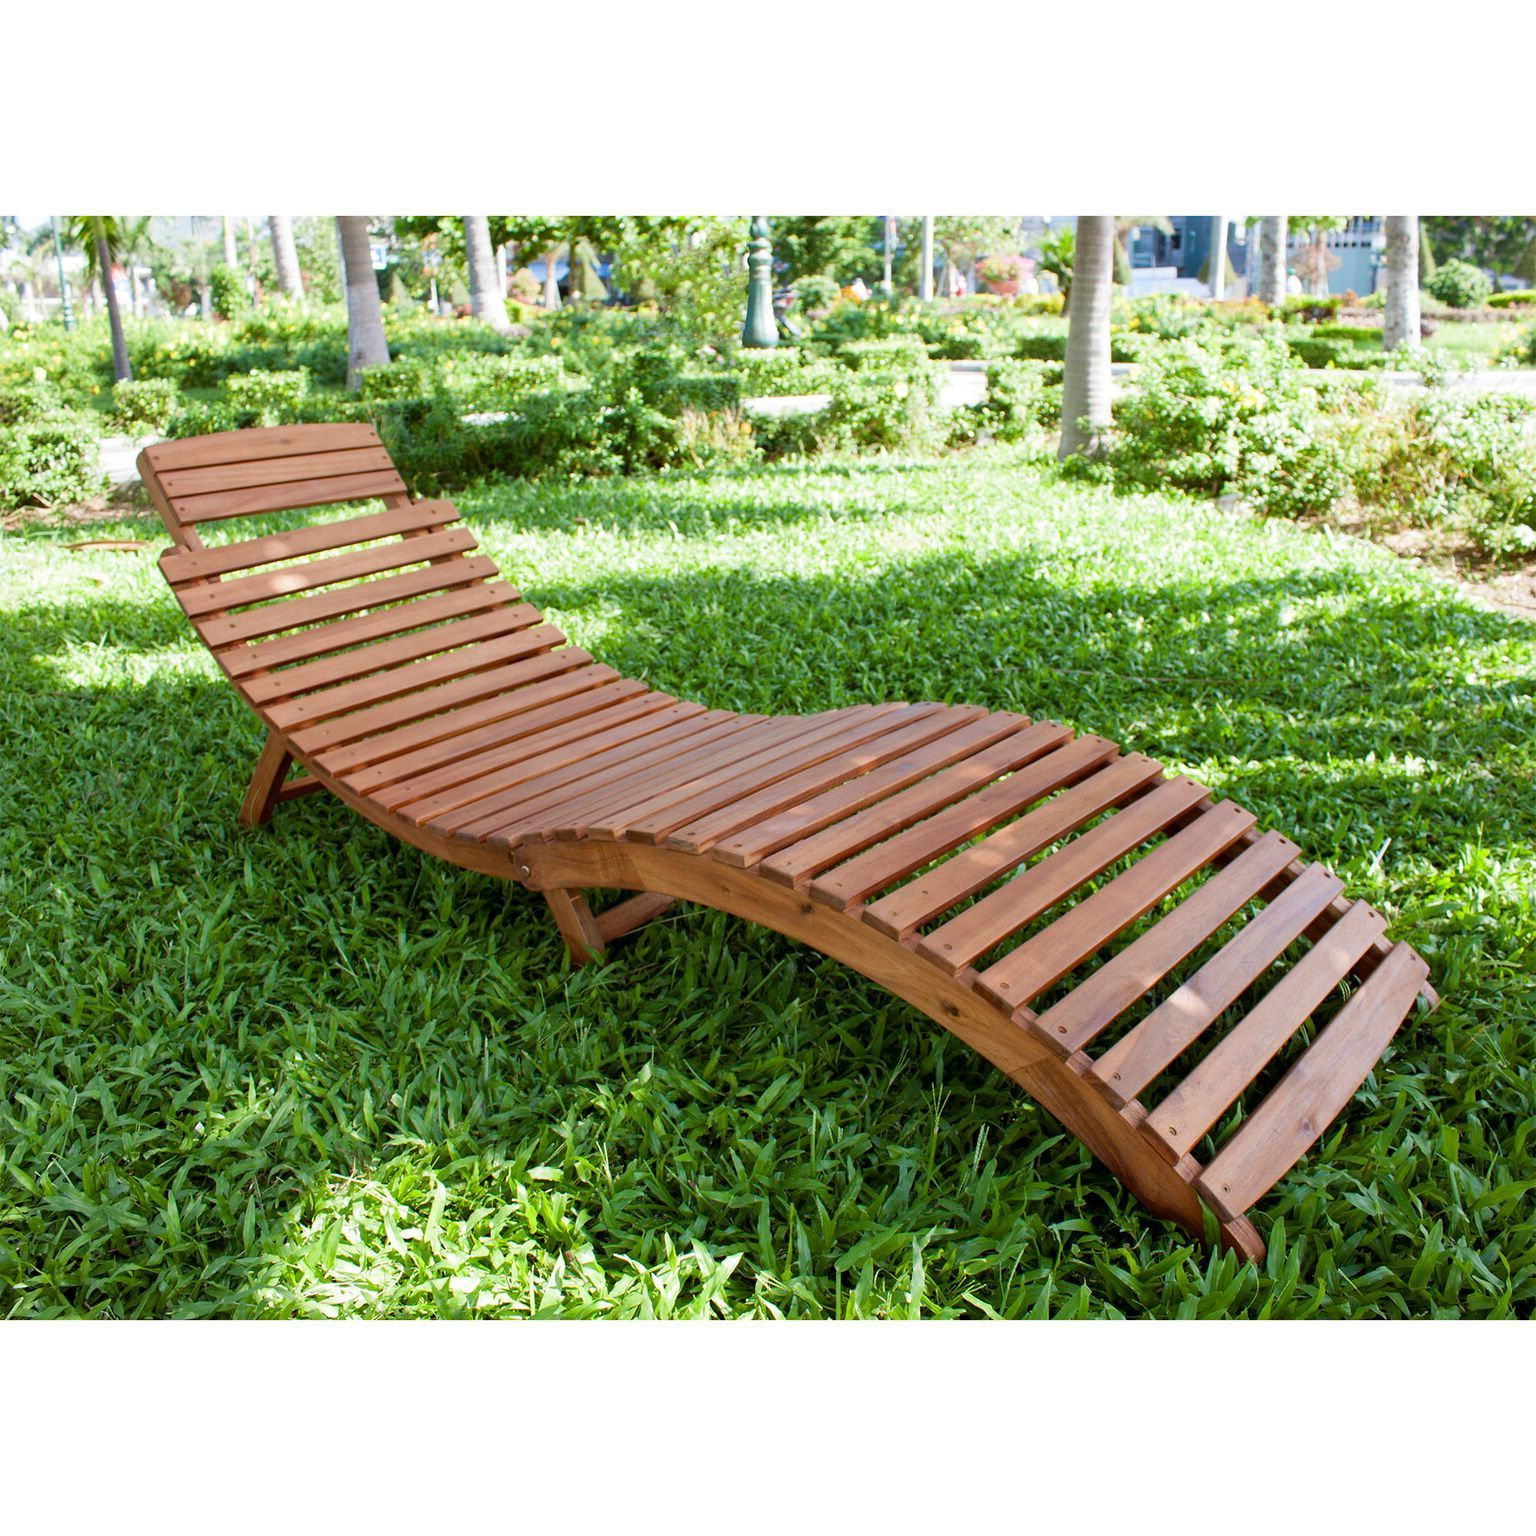 2019 Curved Folding Chaise Loungers Regarding Havenside Home Shi Shi Curved Folding Chaise Lounger (View 4 of 25)